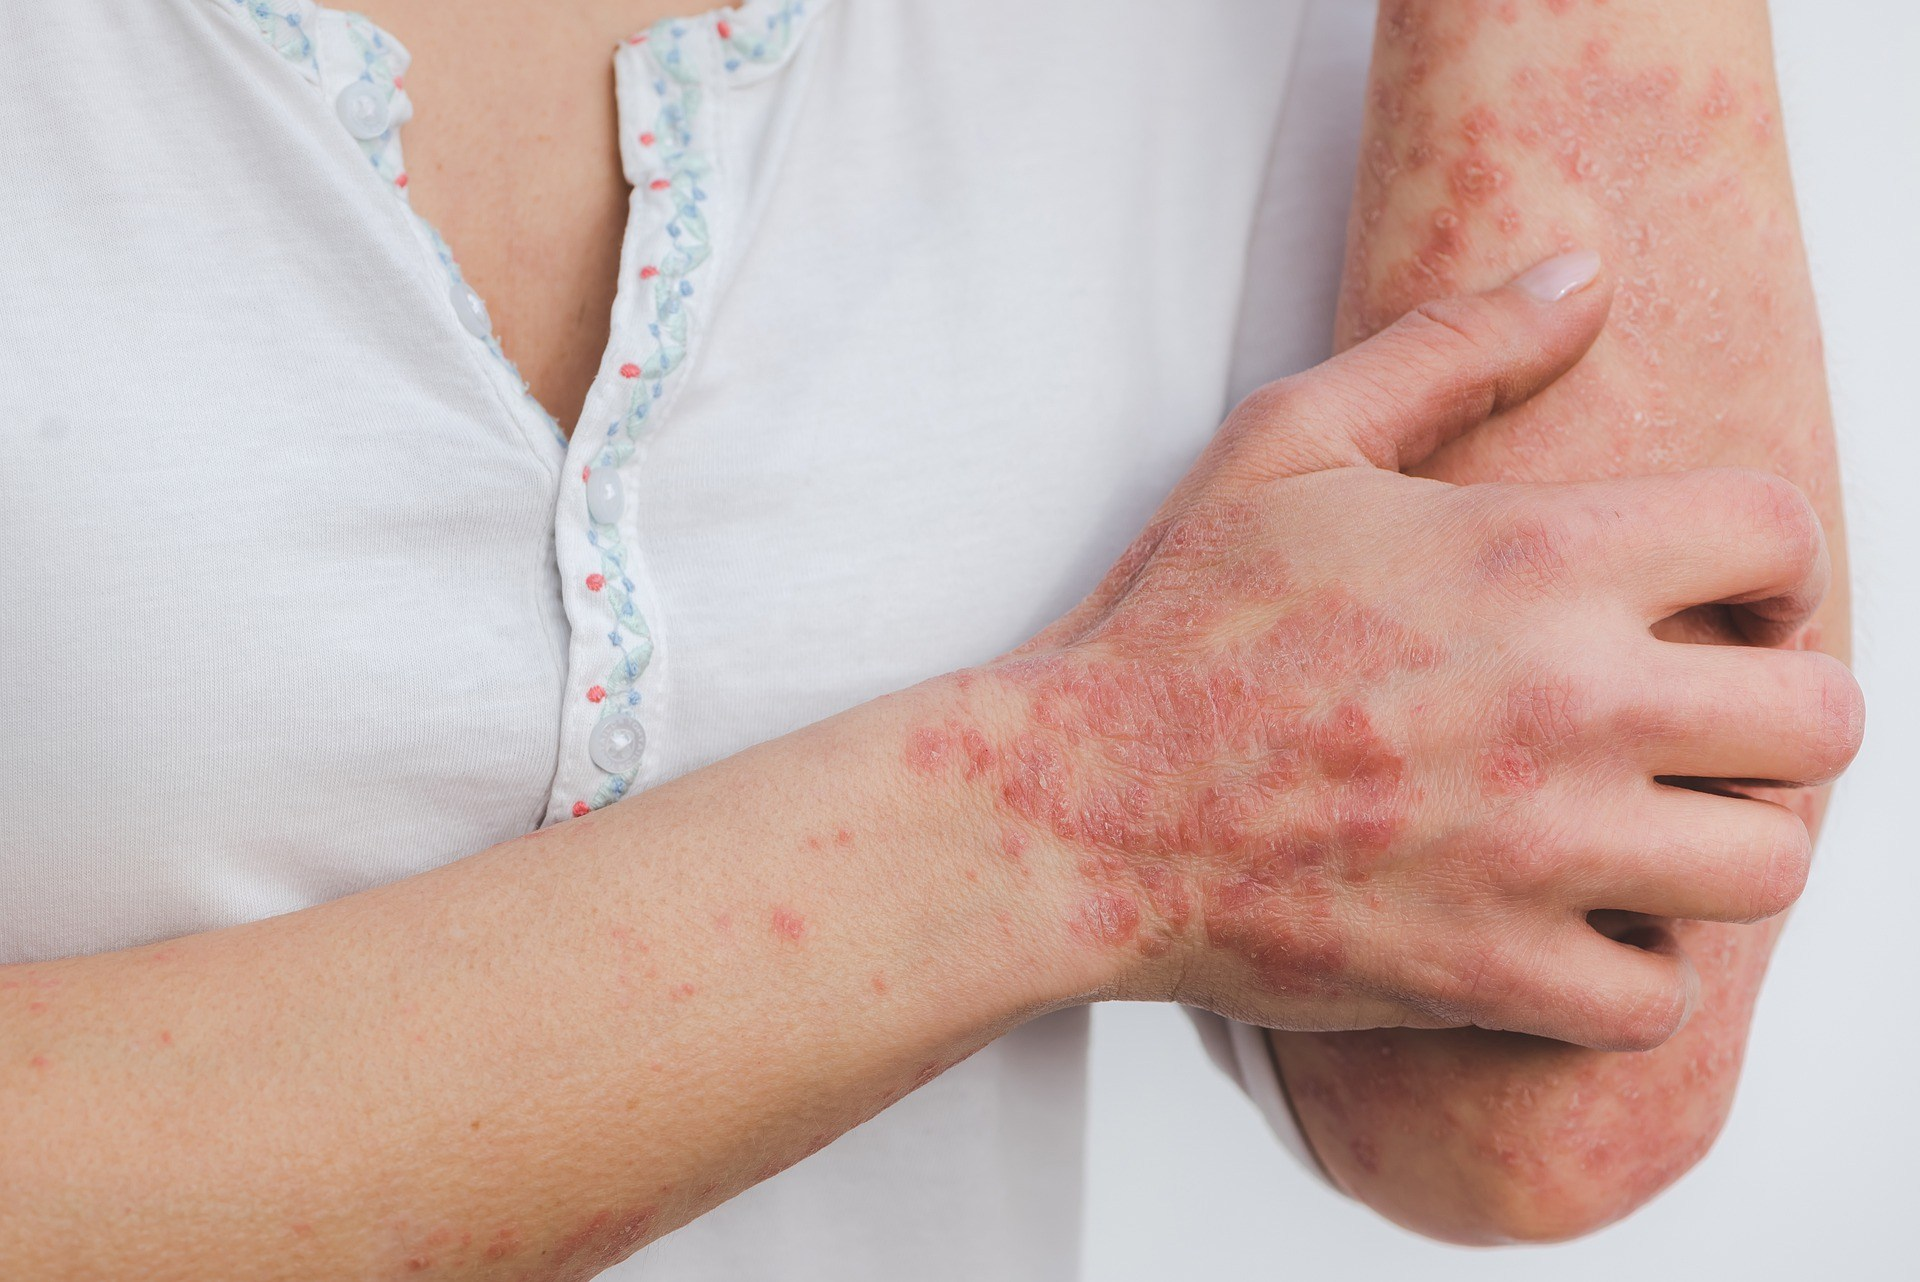 This Is What Psoriasis Looks Like